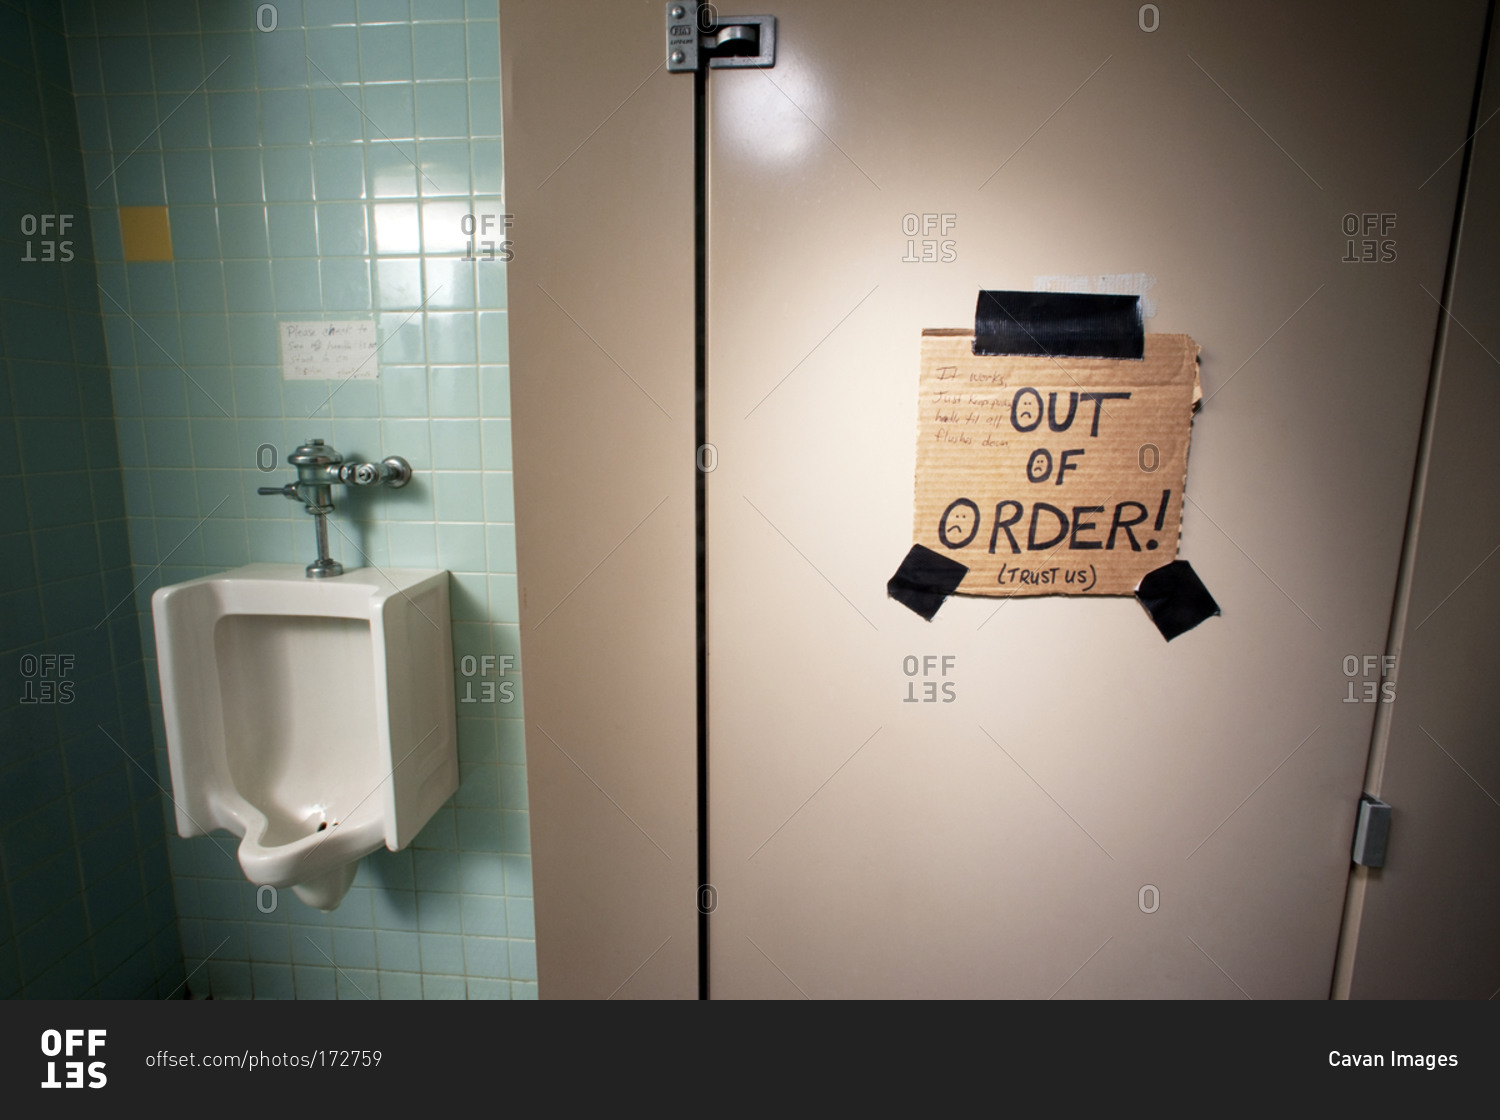 Bathroom Out Of Order an out of order bathroom stall stock photo - offset